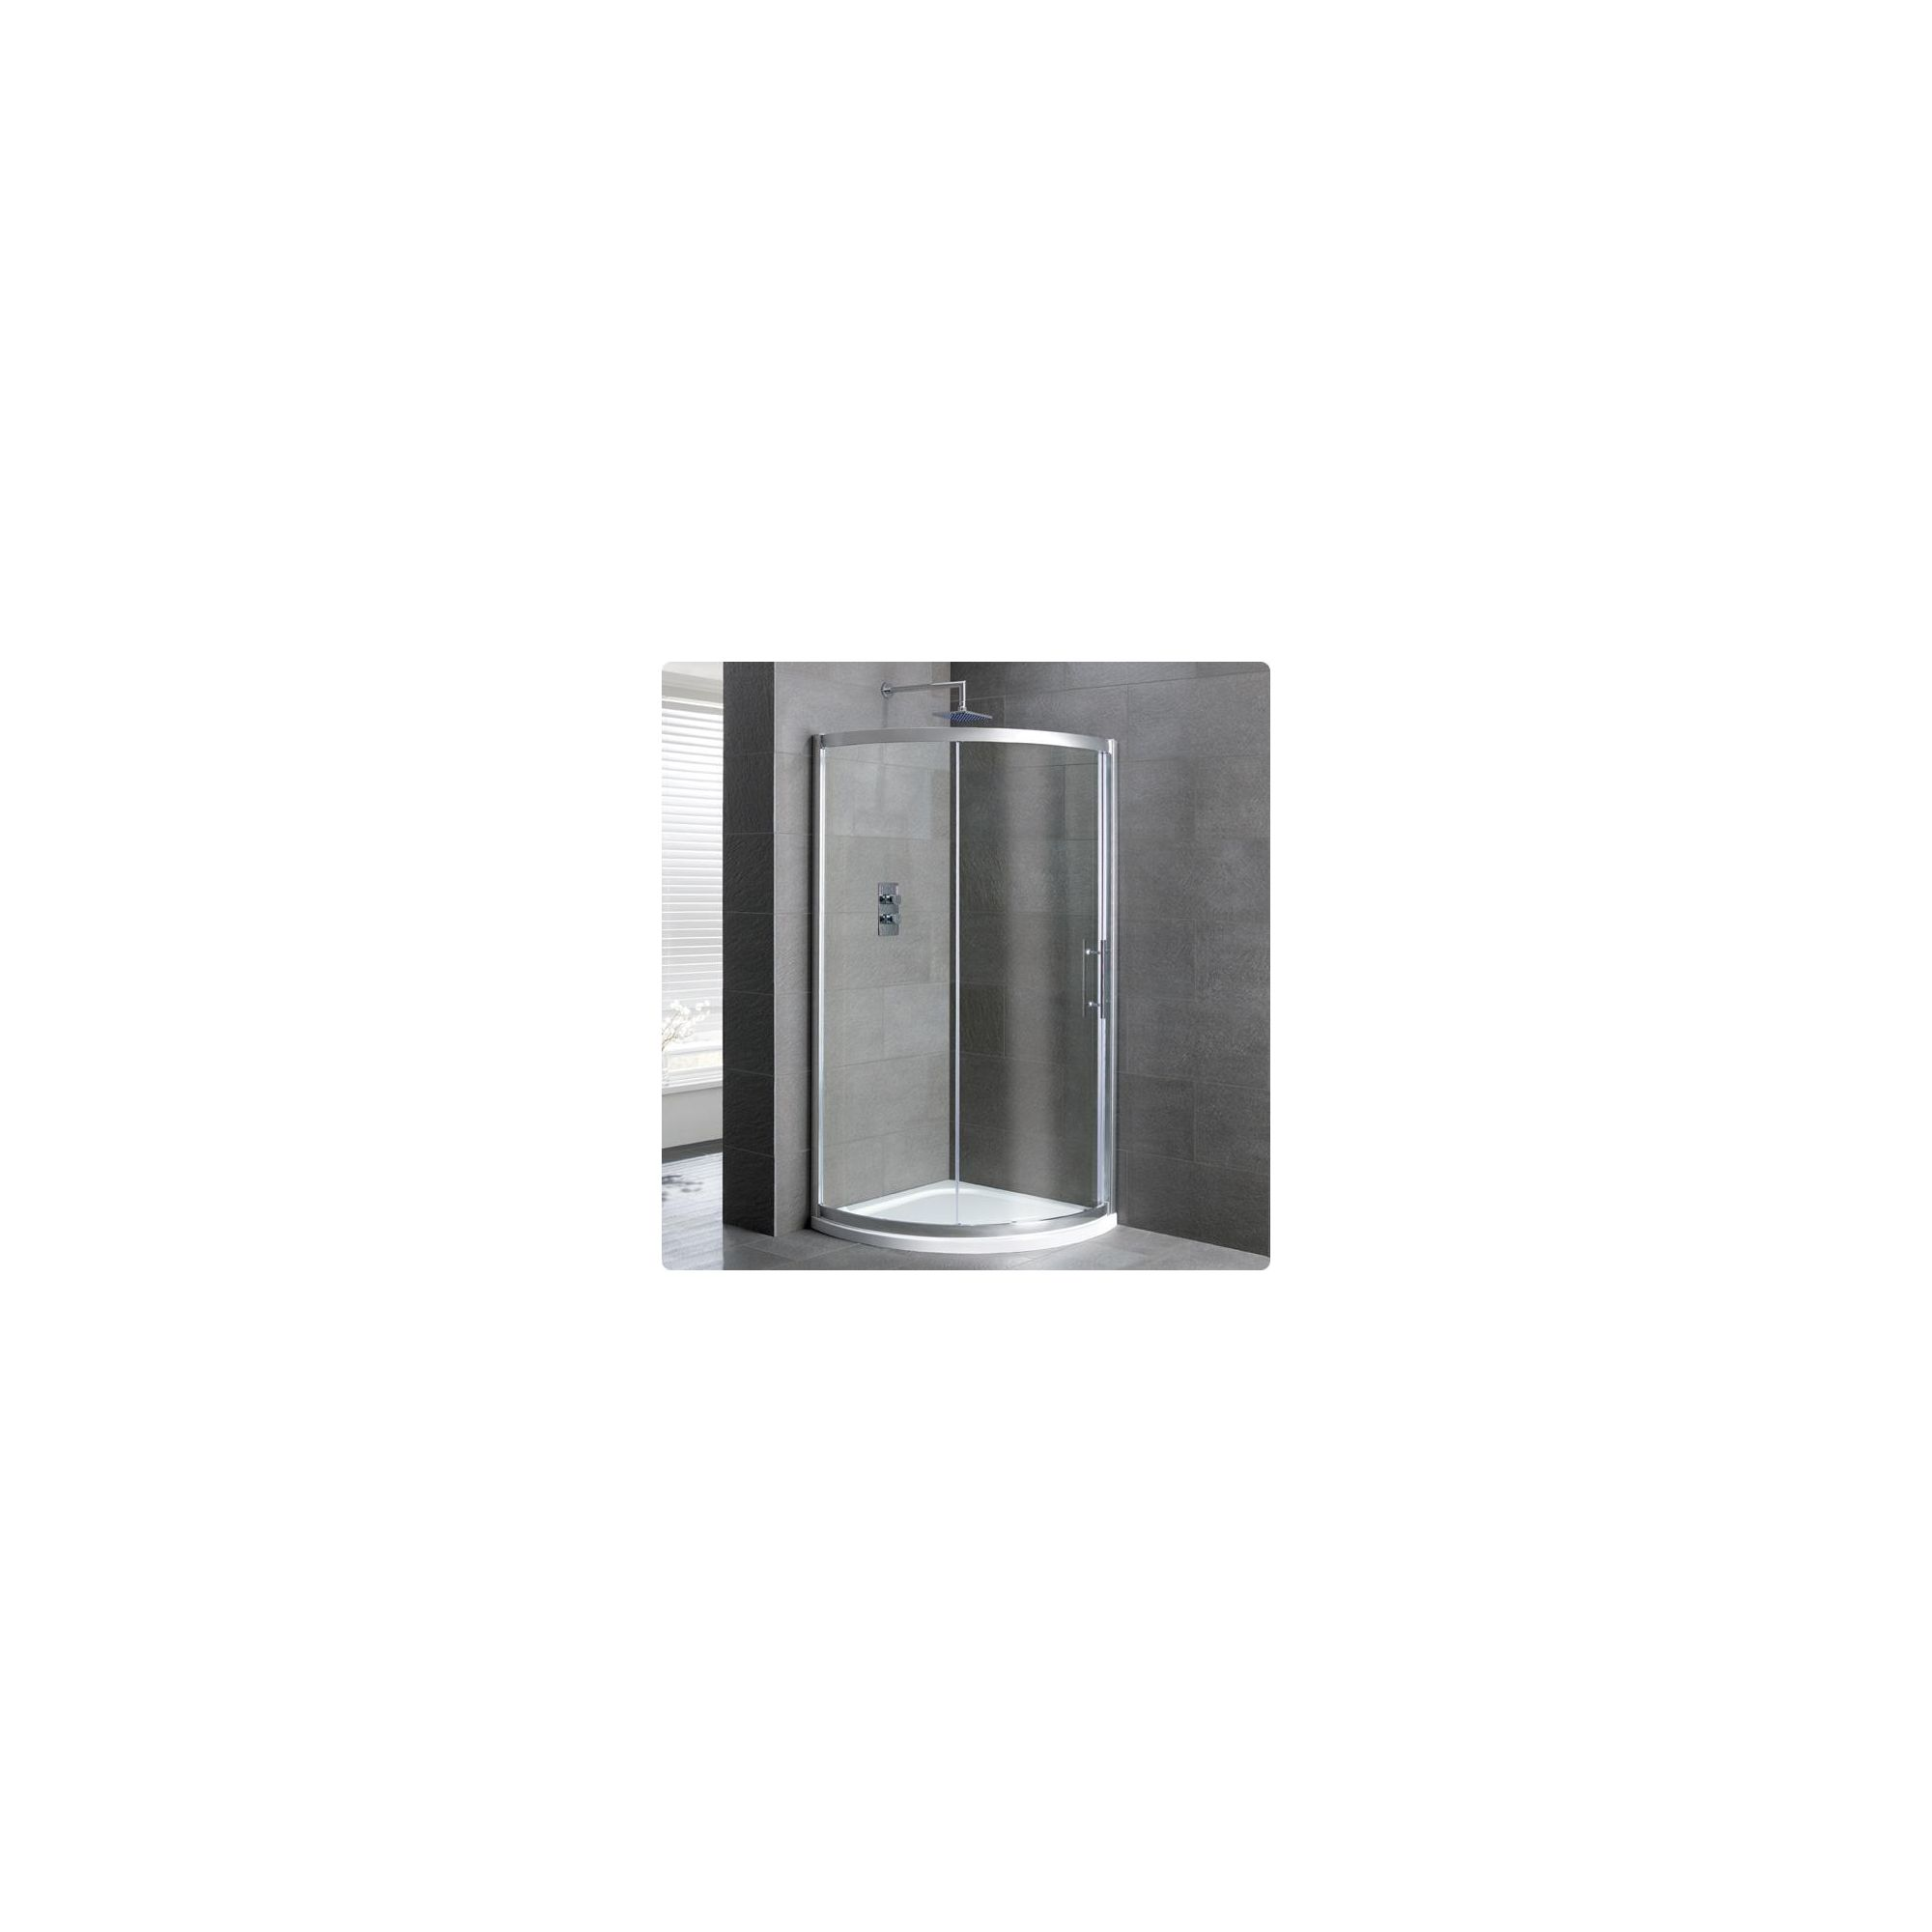 Duchy Select Silver 2 Door Quadrant Shower Enclosure 800mm, Standard Tray, 6mm Glass at Tesco Direct